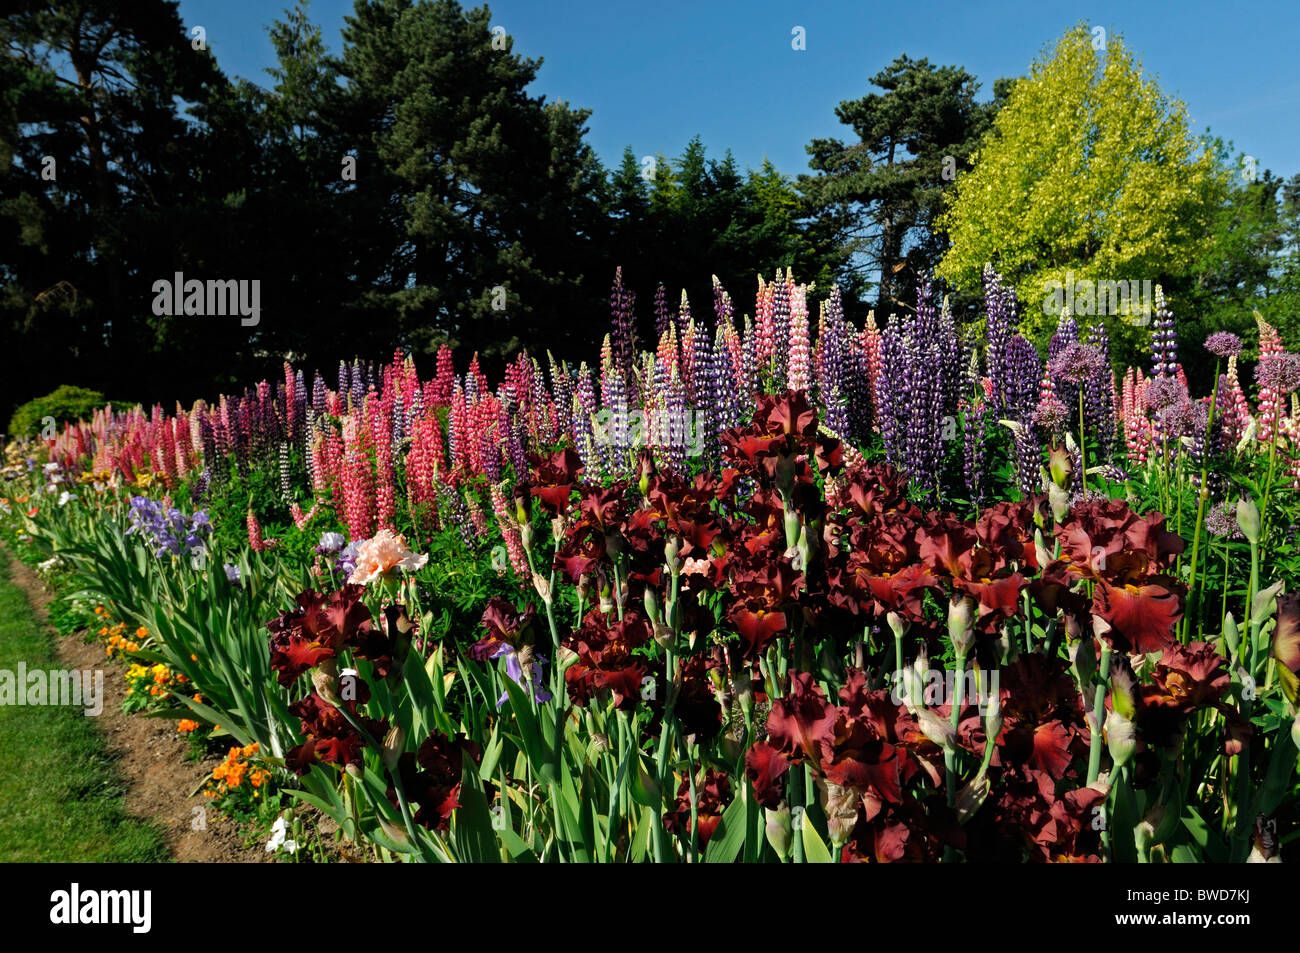 Lupin border stock photos lupin border stock images alamy mixed herbaceous perennial flower bed border garden multi multiple color colors summer colorful colourful lupin mightylinksfo